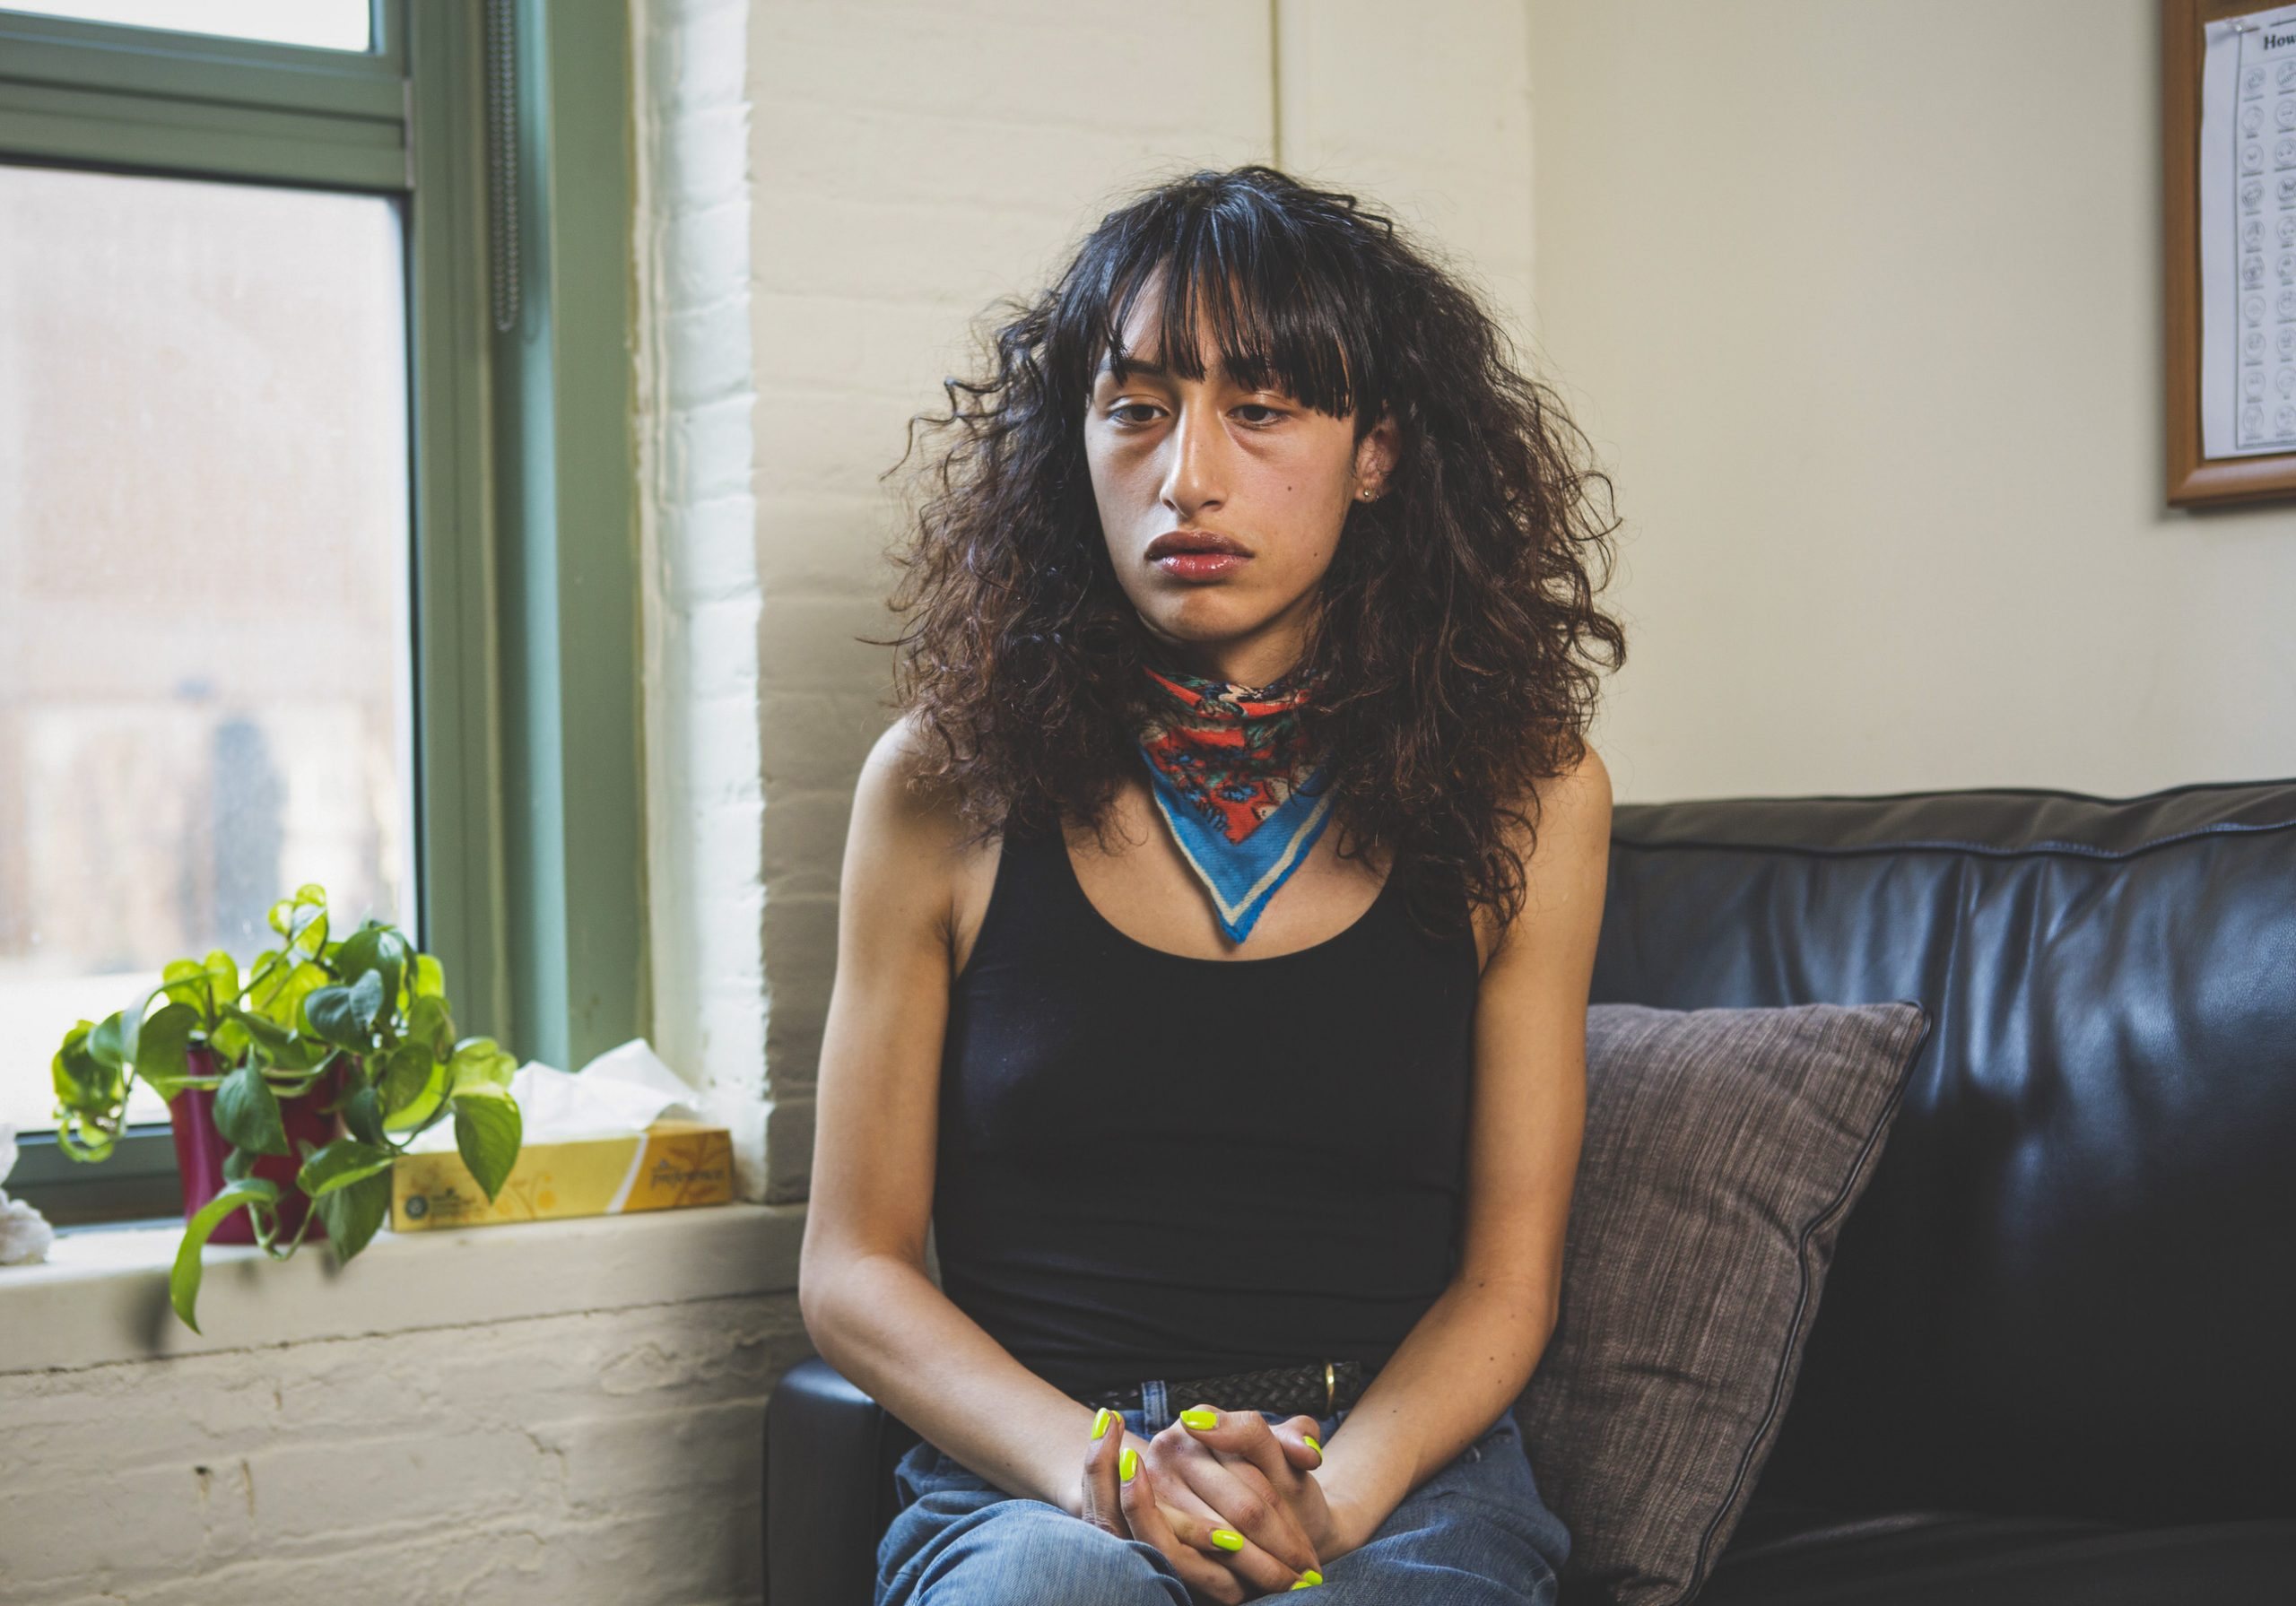 A transgender woman sitting on a therapist's couch and looking upset